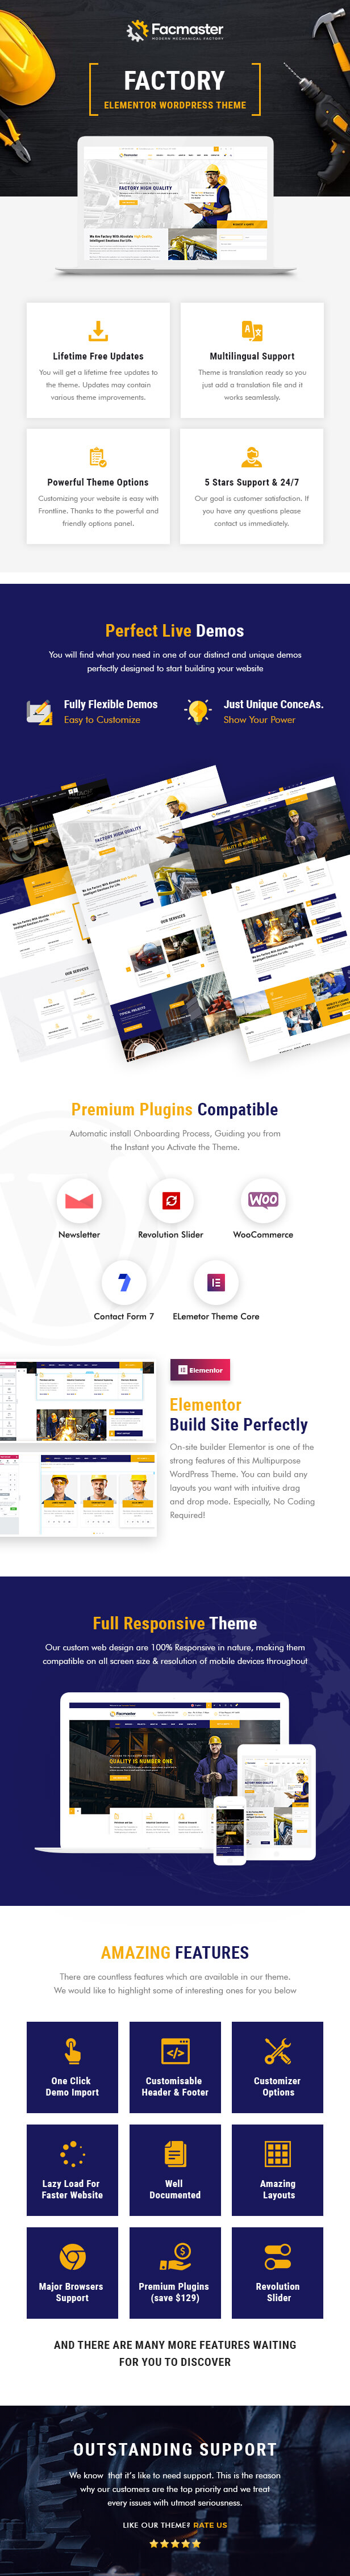 Facmaster - Factory and Industrial WordPress Theme - 1